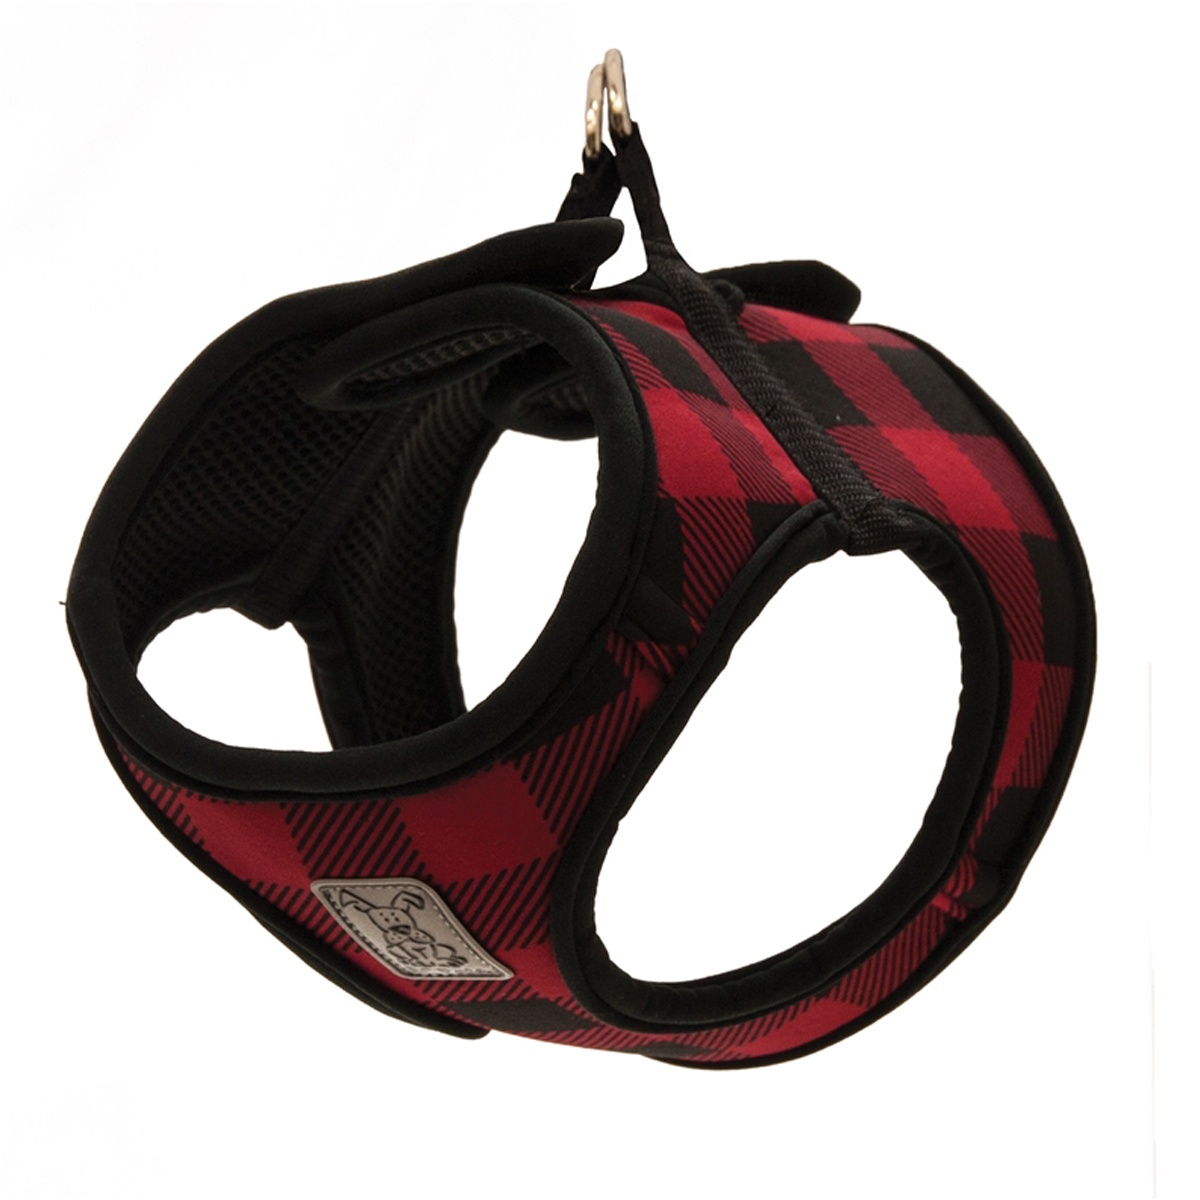 Step-in Cirque Dog Harness - Red Buffalo